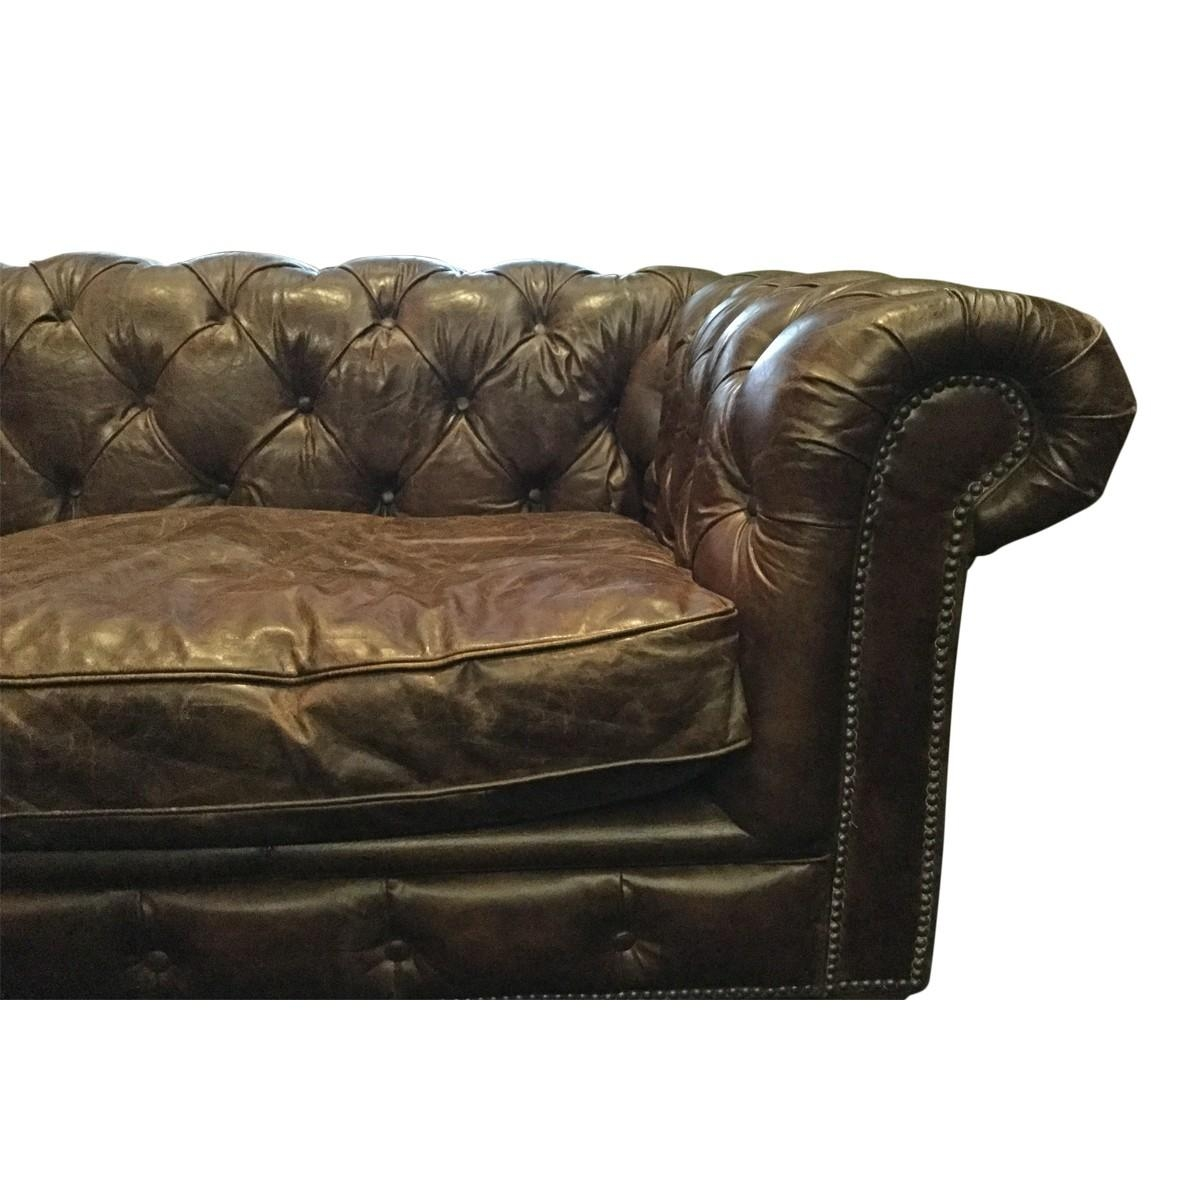 Beautiful Restoration Hardware Sectional Sofas 68 About Remodel Throughout Savoy Leather Sofas (View 16 of 20)